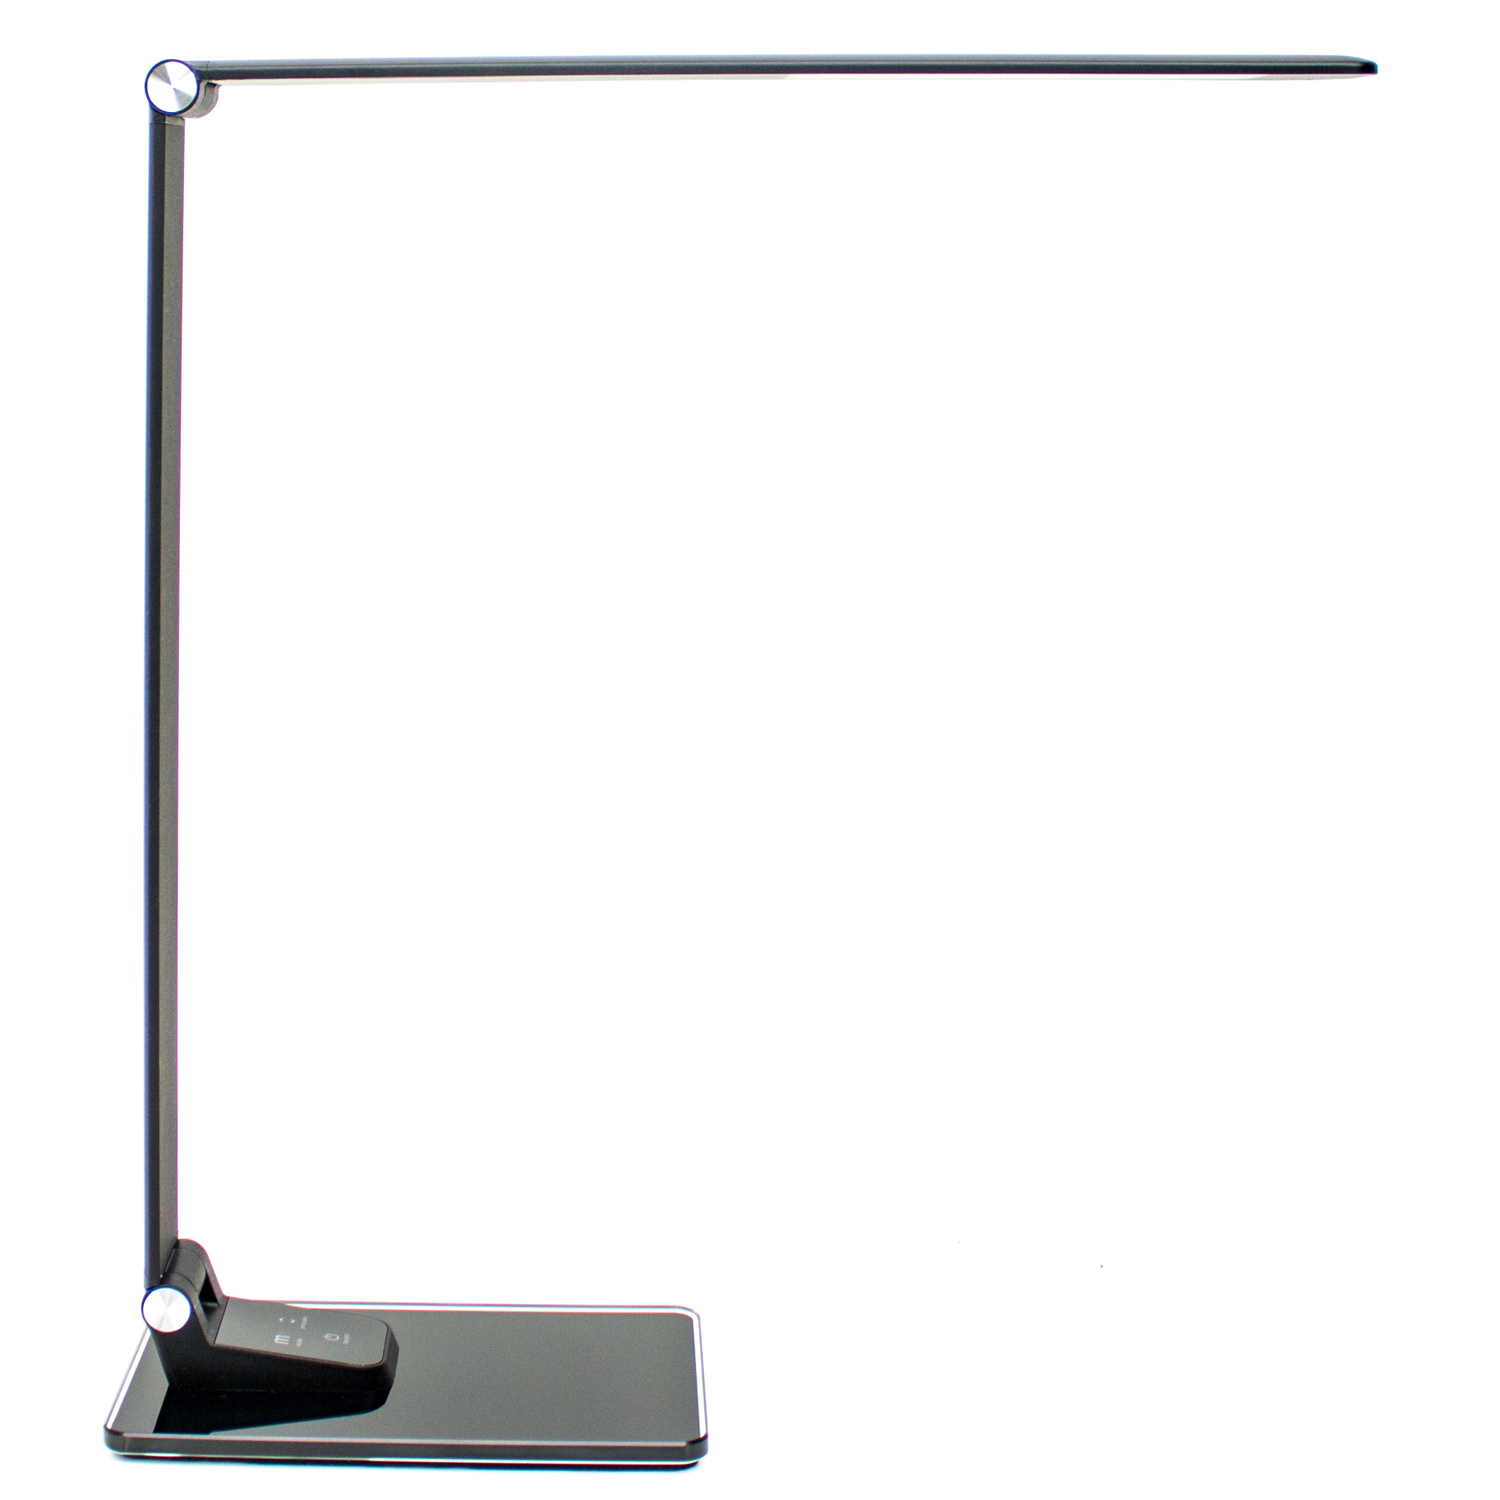 9W LED Executive Desk Lamp w/ Touch Dimming Control & USB Charging Port - Newhouse Lighting